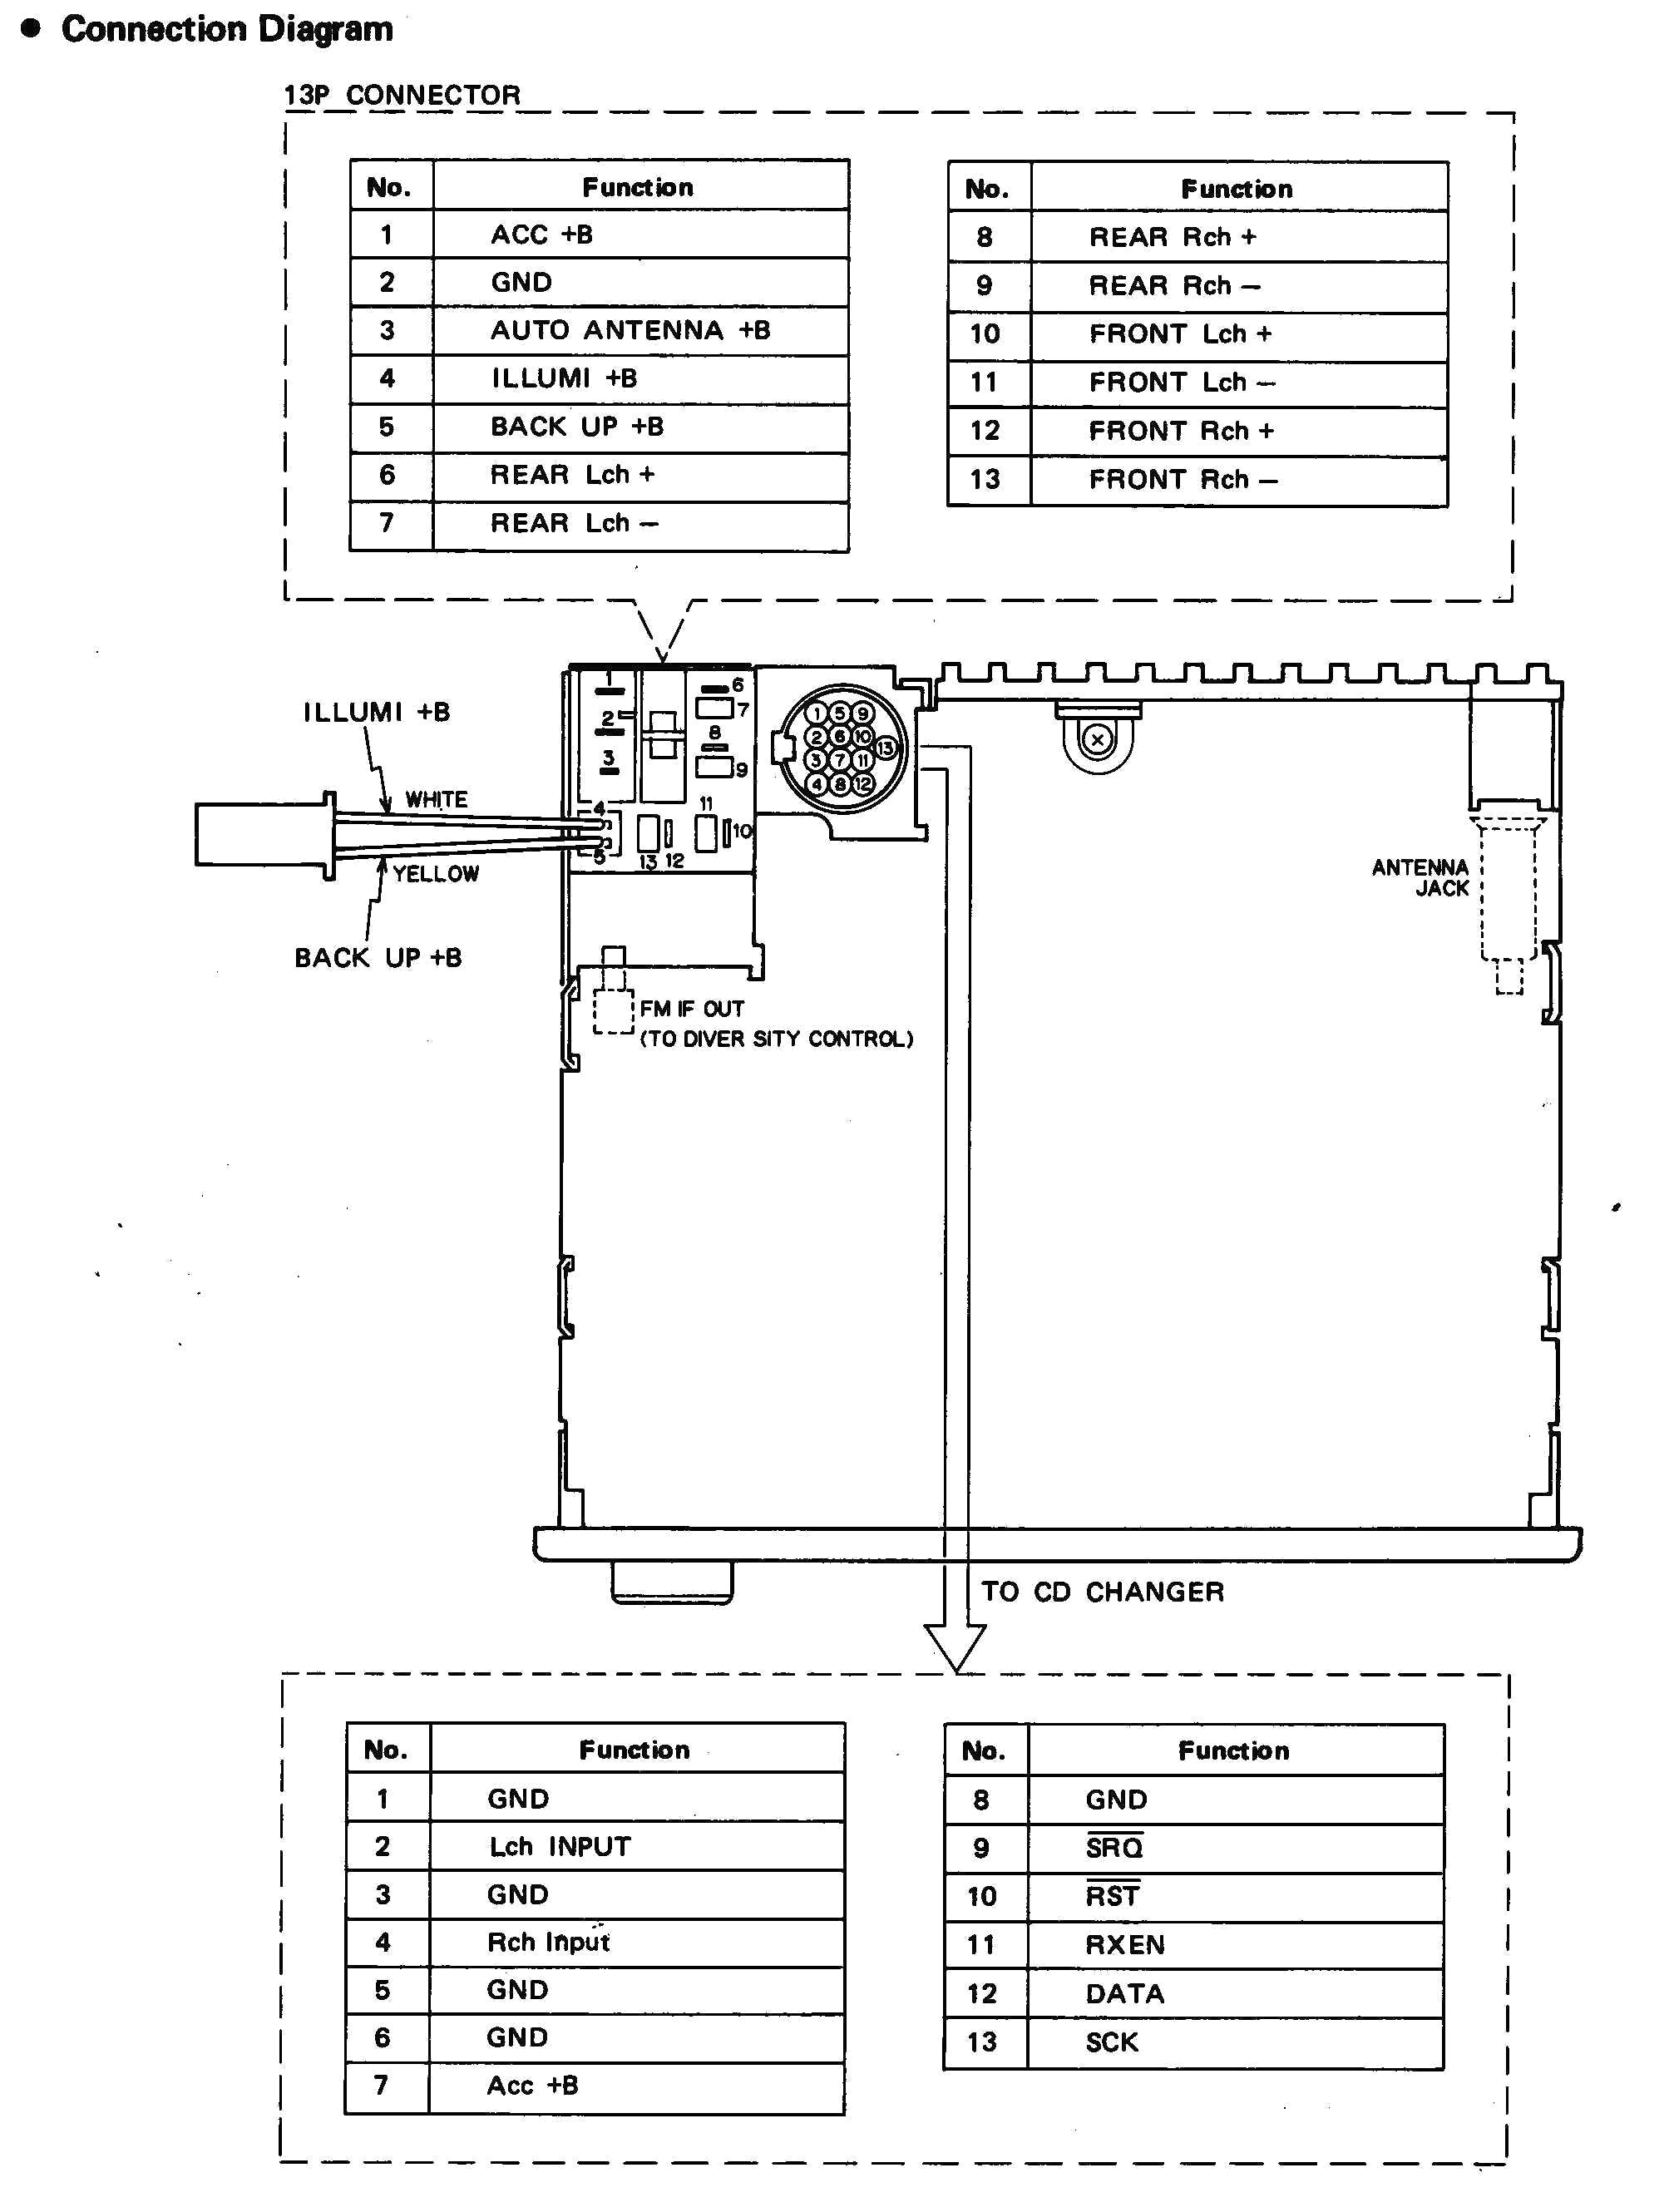 sony xplod car stereo wiring diagram Download-Wiring Diagram For Sony Xplod Car Stereo Save Sony Xplod Car Stereo Wiring Diagram Factory Car Stereo Wiring 5-d